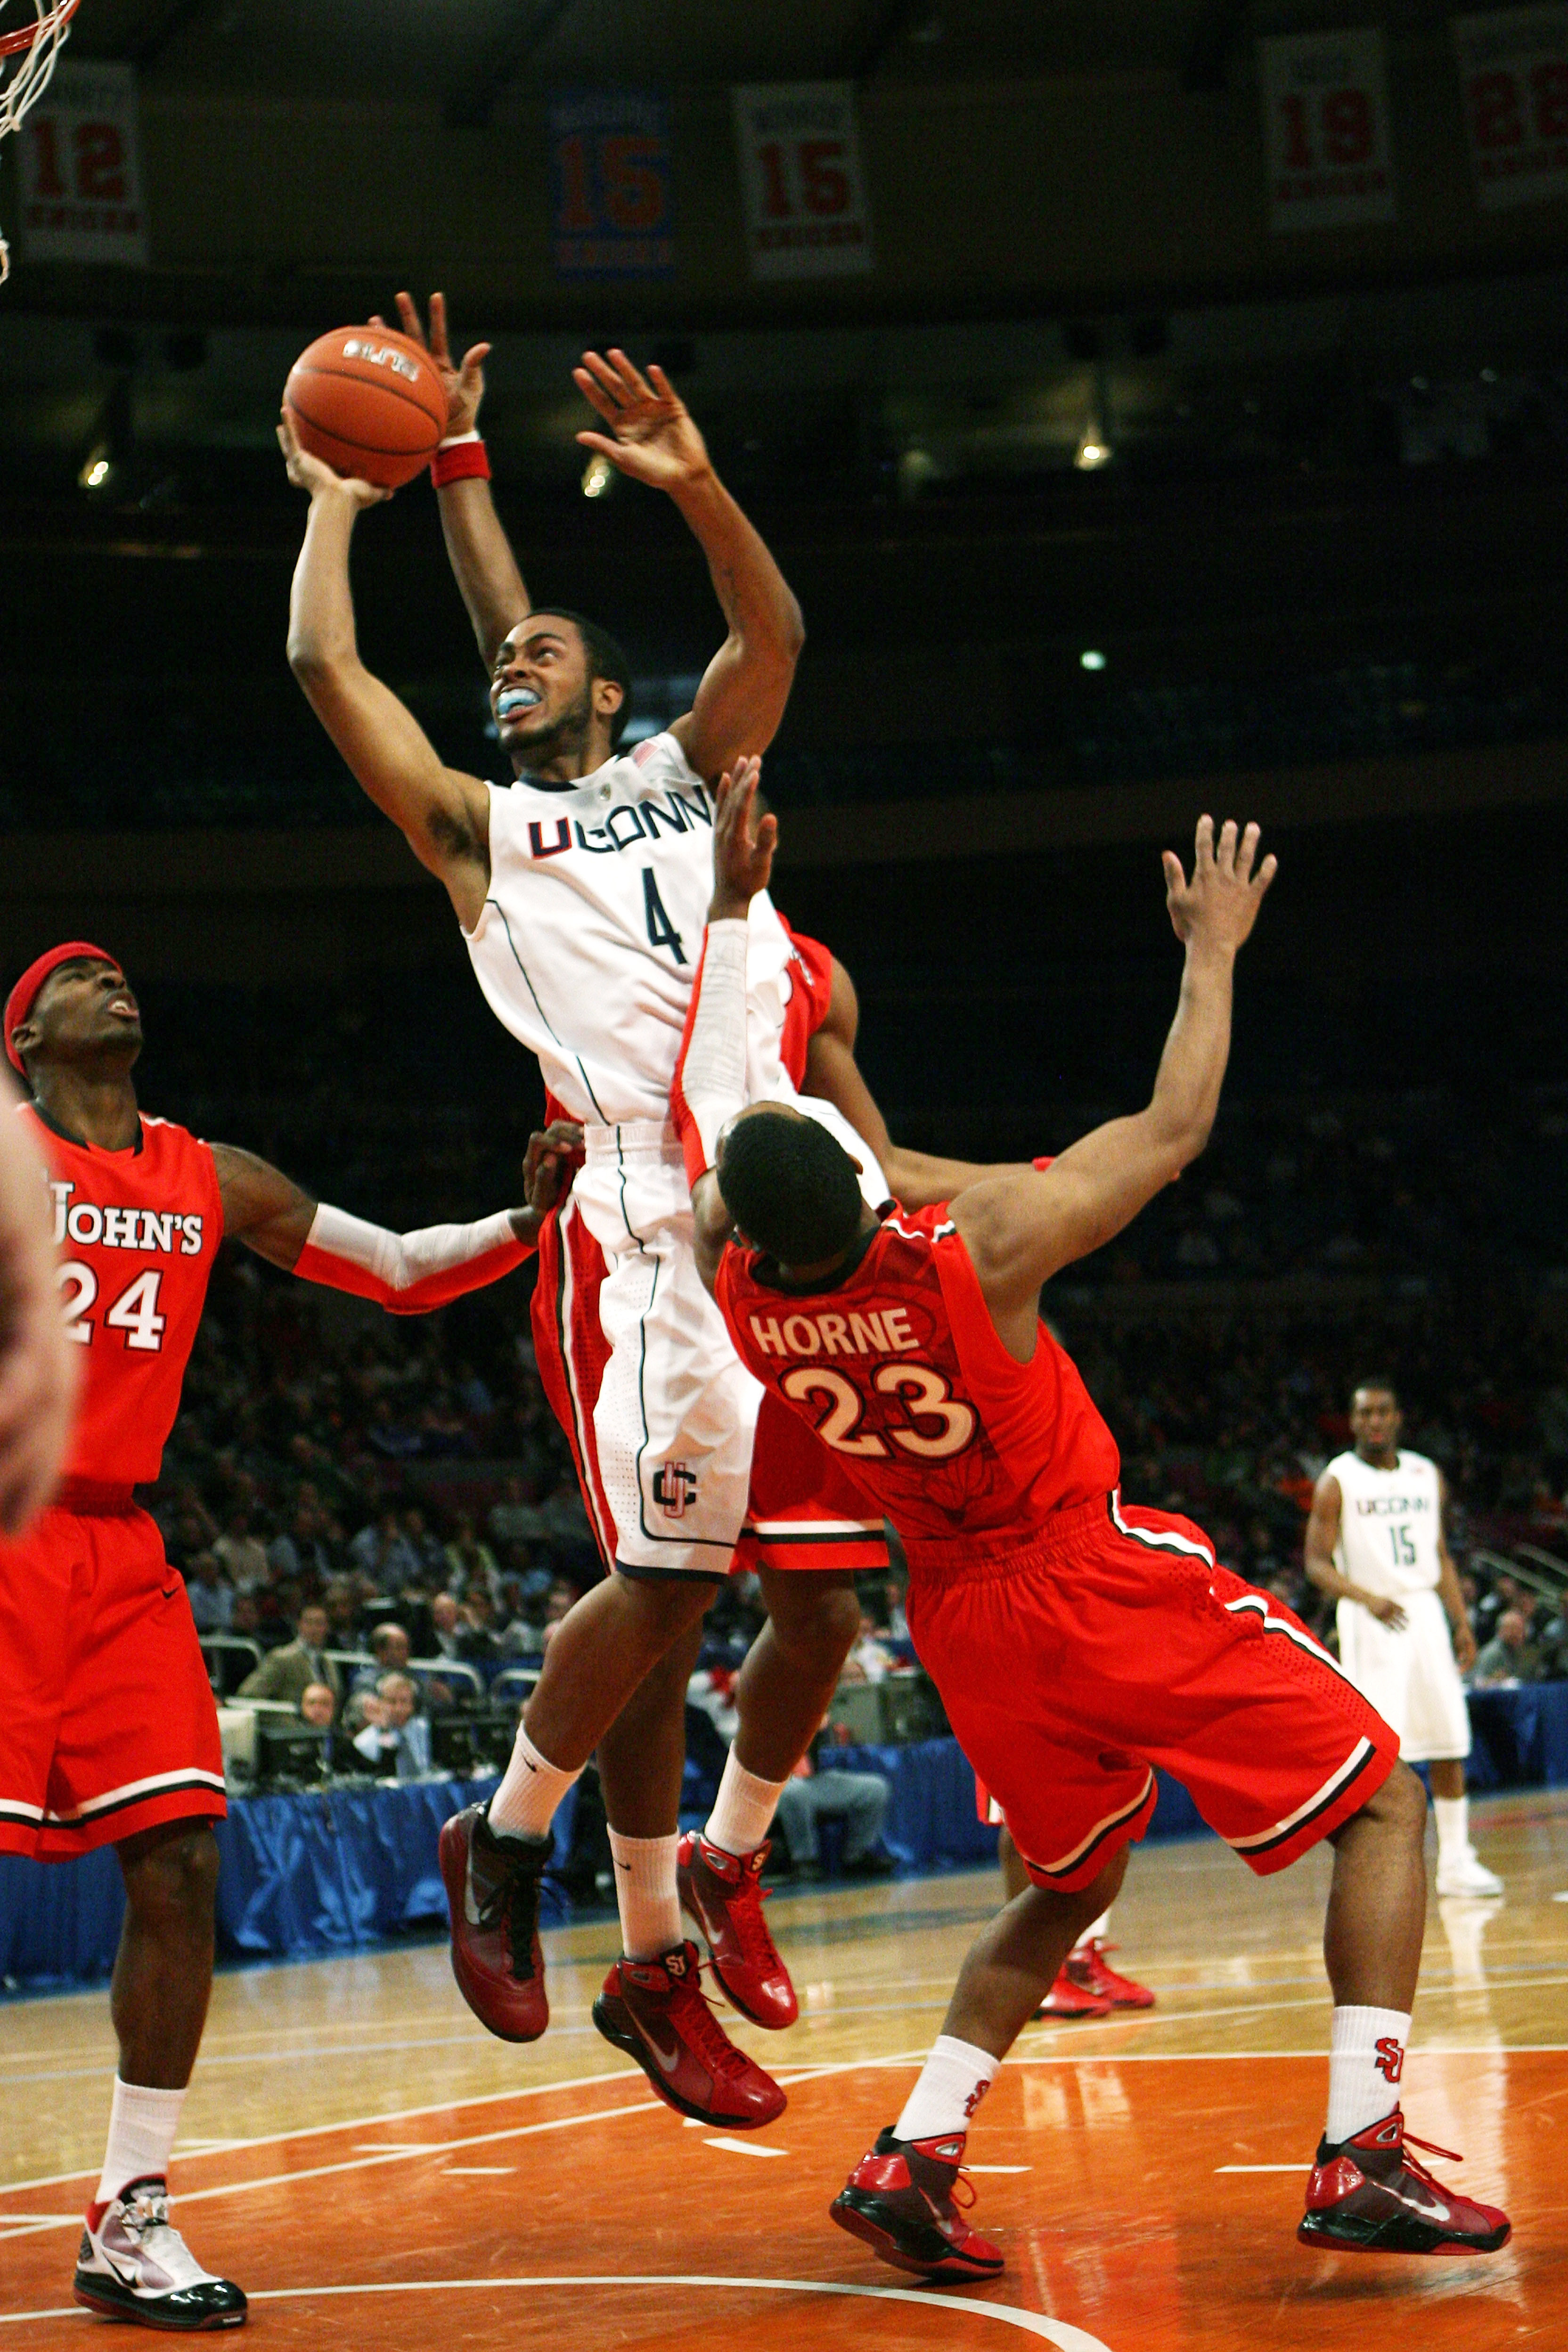 NEW YORK - MARCH 09: Jamal Coombs-McDaniel #4 the Connecticut Huskies drives to the basket over  Paris Horne #23 of the St. John's Red Storm at Madison Square Garden on March 9, 2010 in New York, New York. The Red Storm defeated the Huskies 73-51.  (Photo